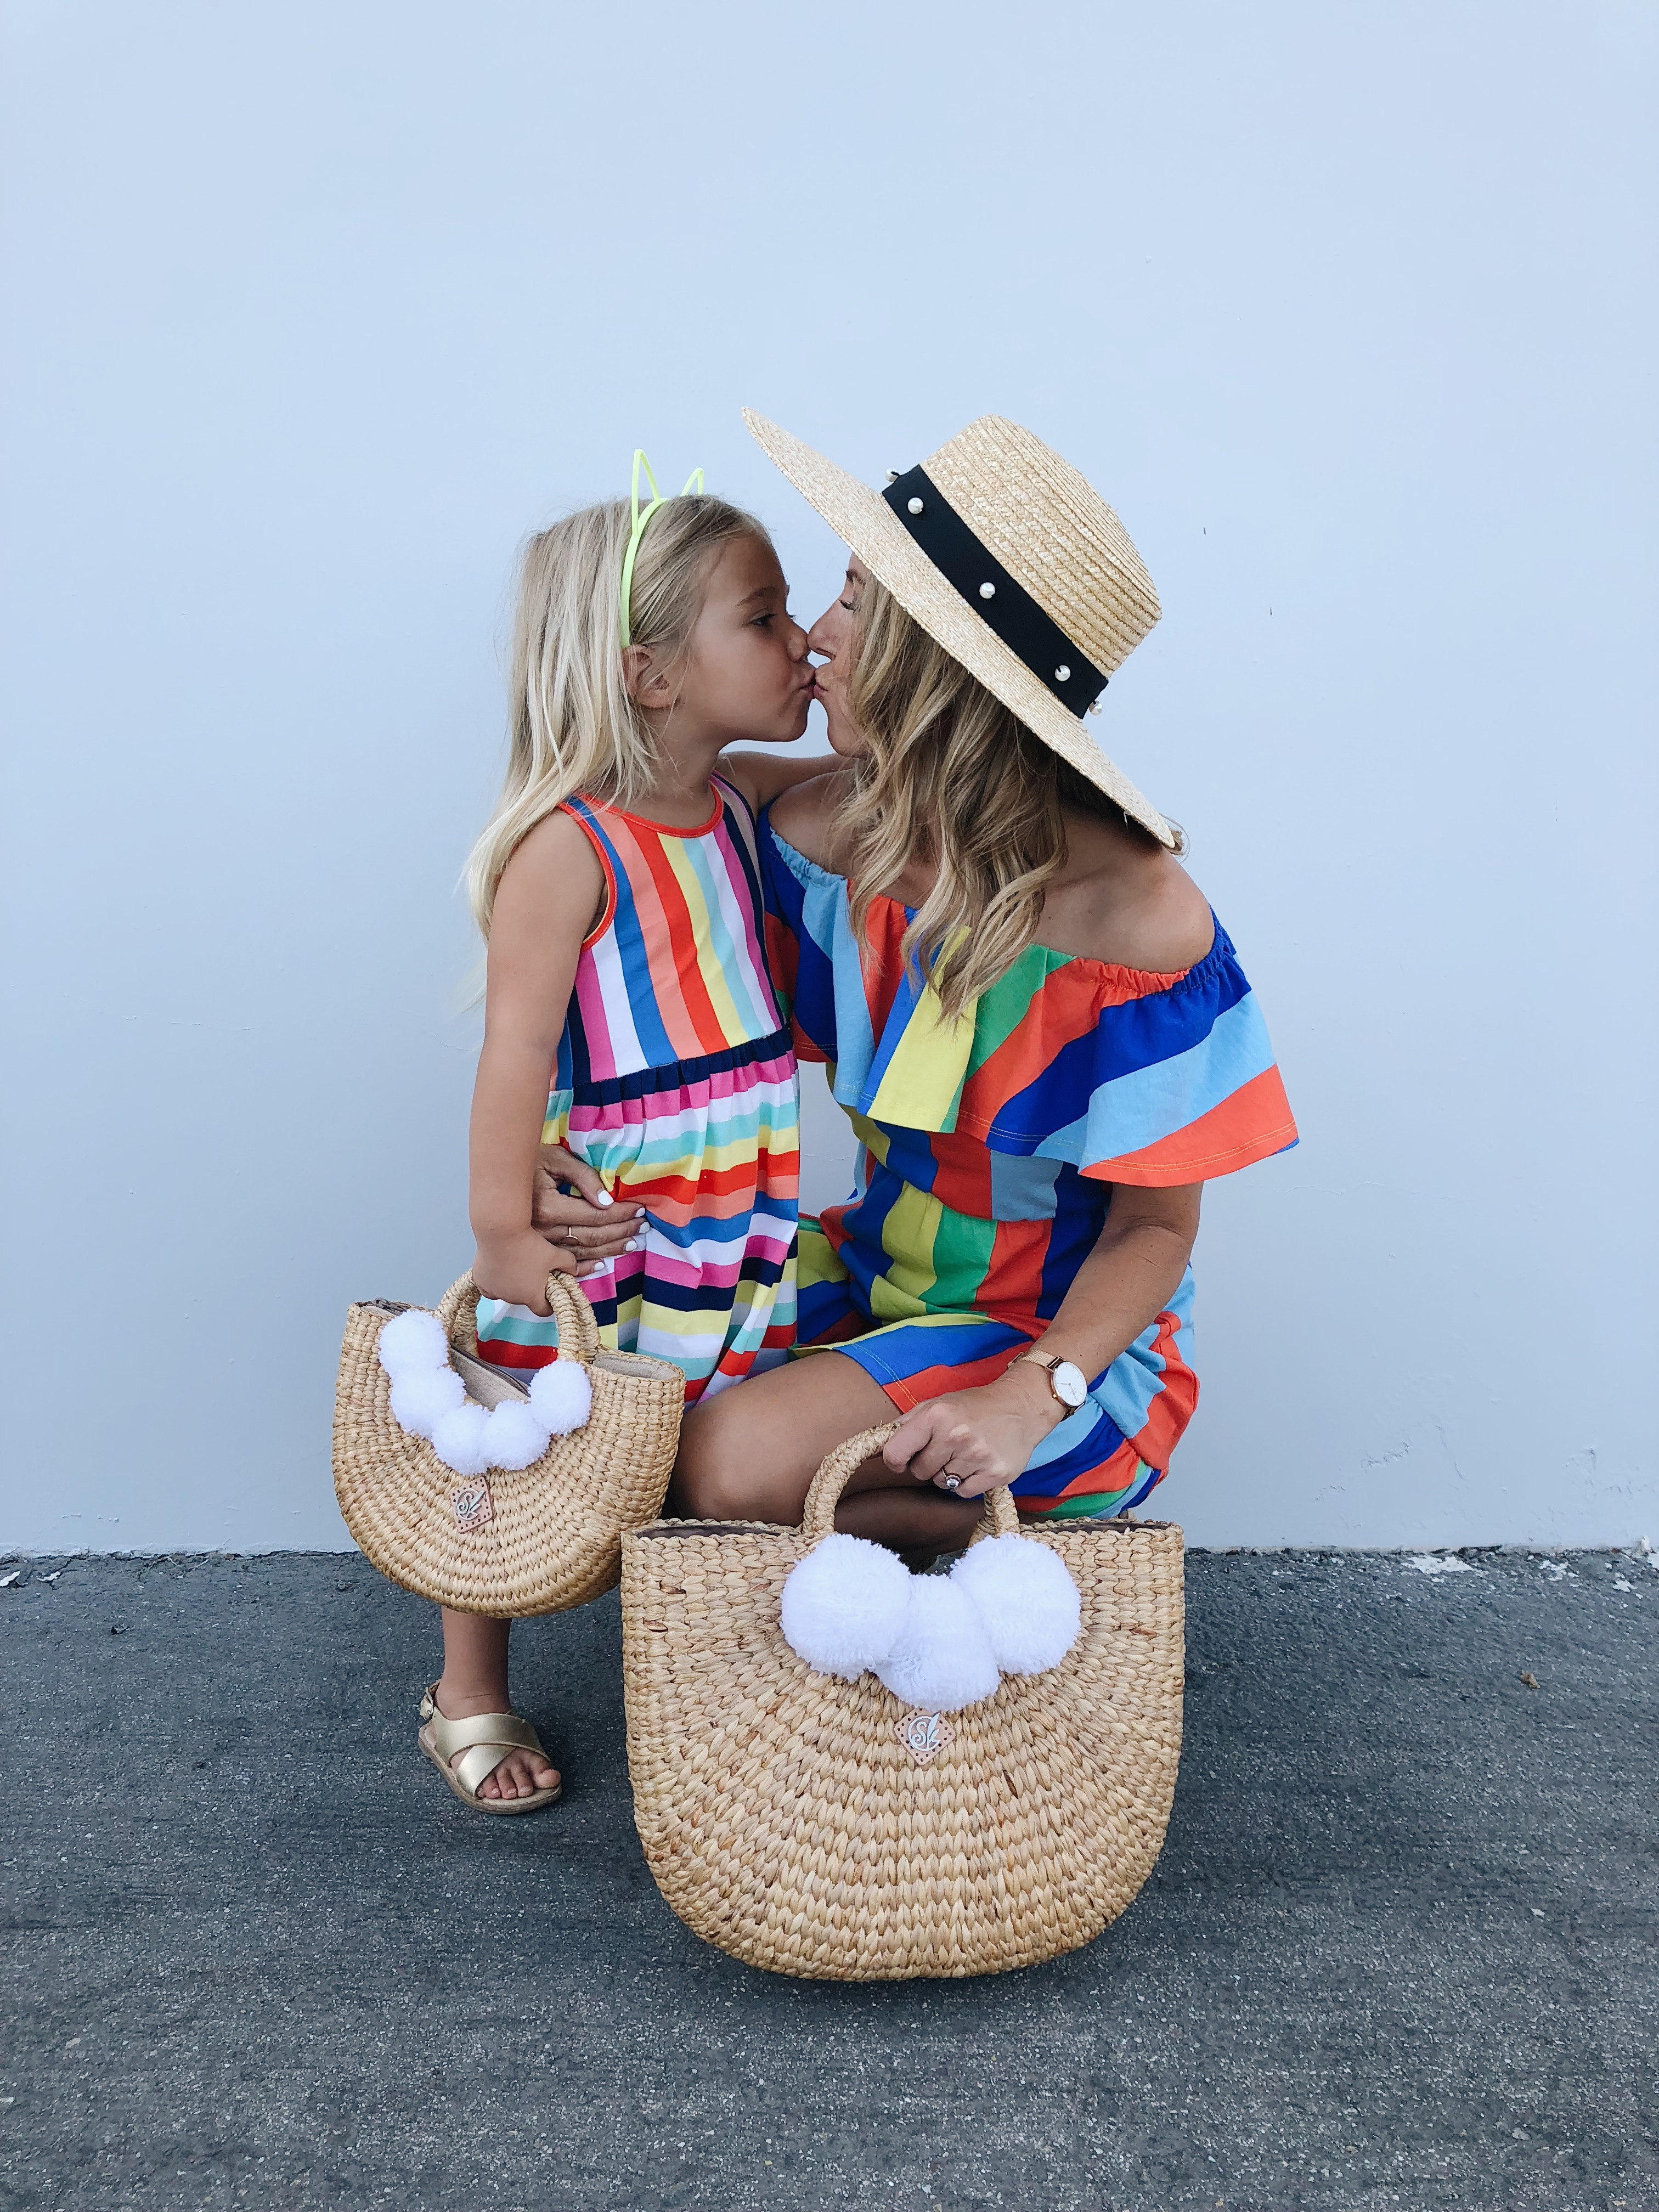 MOMMY & ME IN STRIPES- Jaclyn De Leon Style + MOM STYLE + MATCHING OUTFITS + COLORFUL STRIPES + SUMMER STYLE + KID STYLE + MOMMY LIFE + ASOS + H&M KIDS + CASUAL DRESSES + STREET STYLE + STRIPE TREND + #MOMLIFE #MOMMYANDME #MATCHING